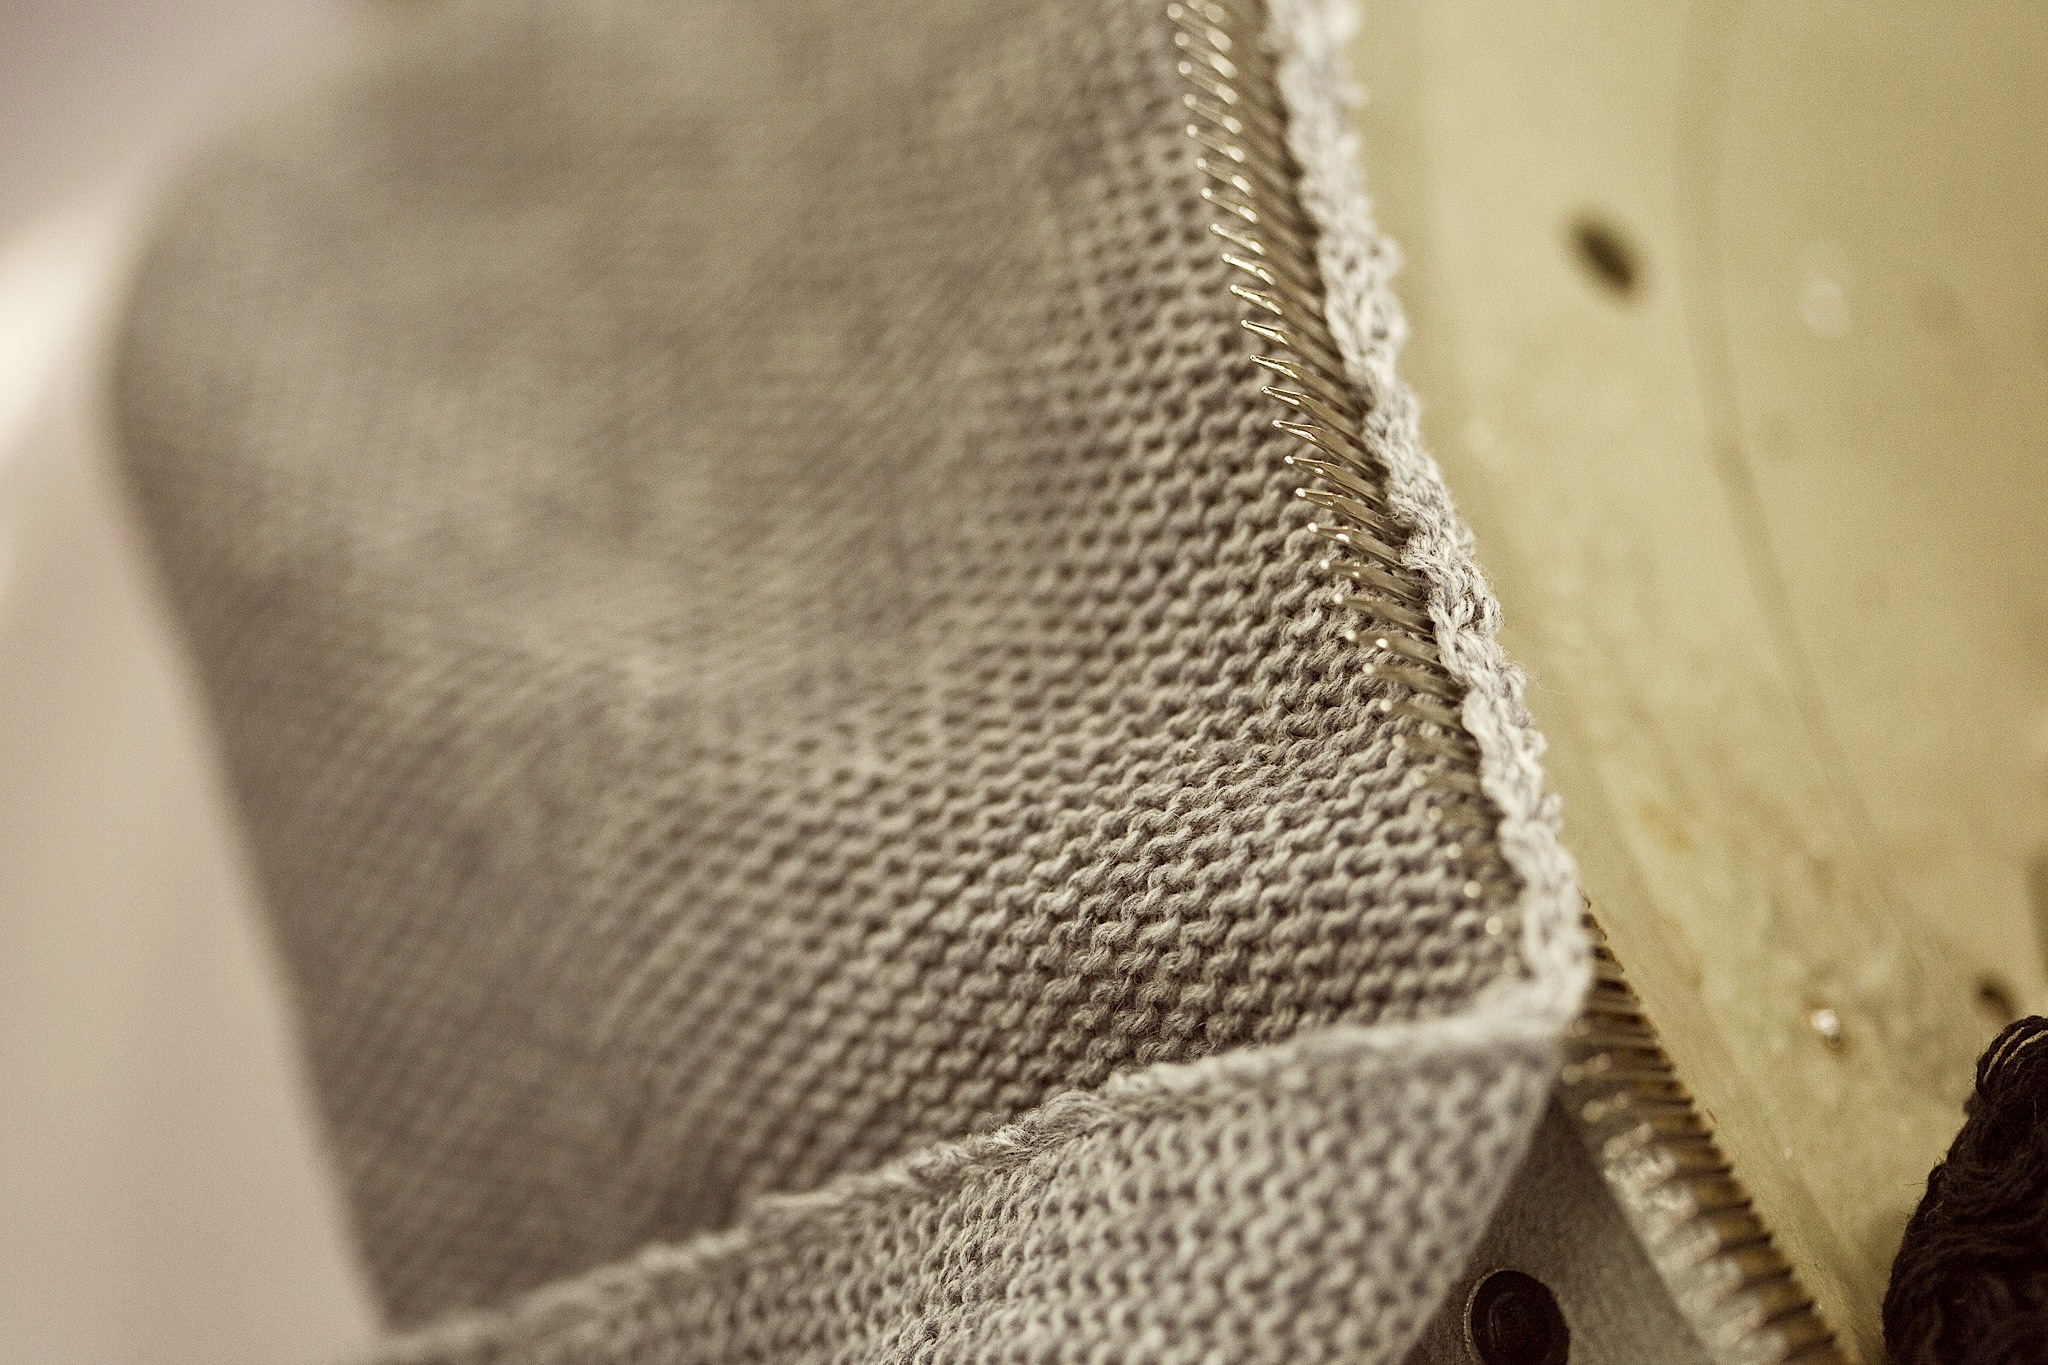 Here is the yarn used to make the finest cashmere apparel exclusively for YAMAA.